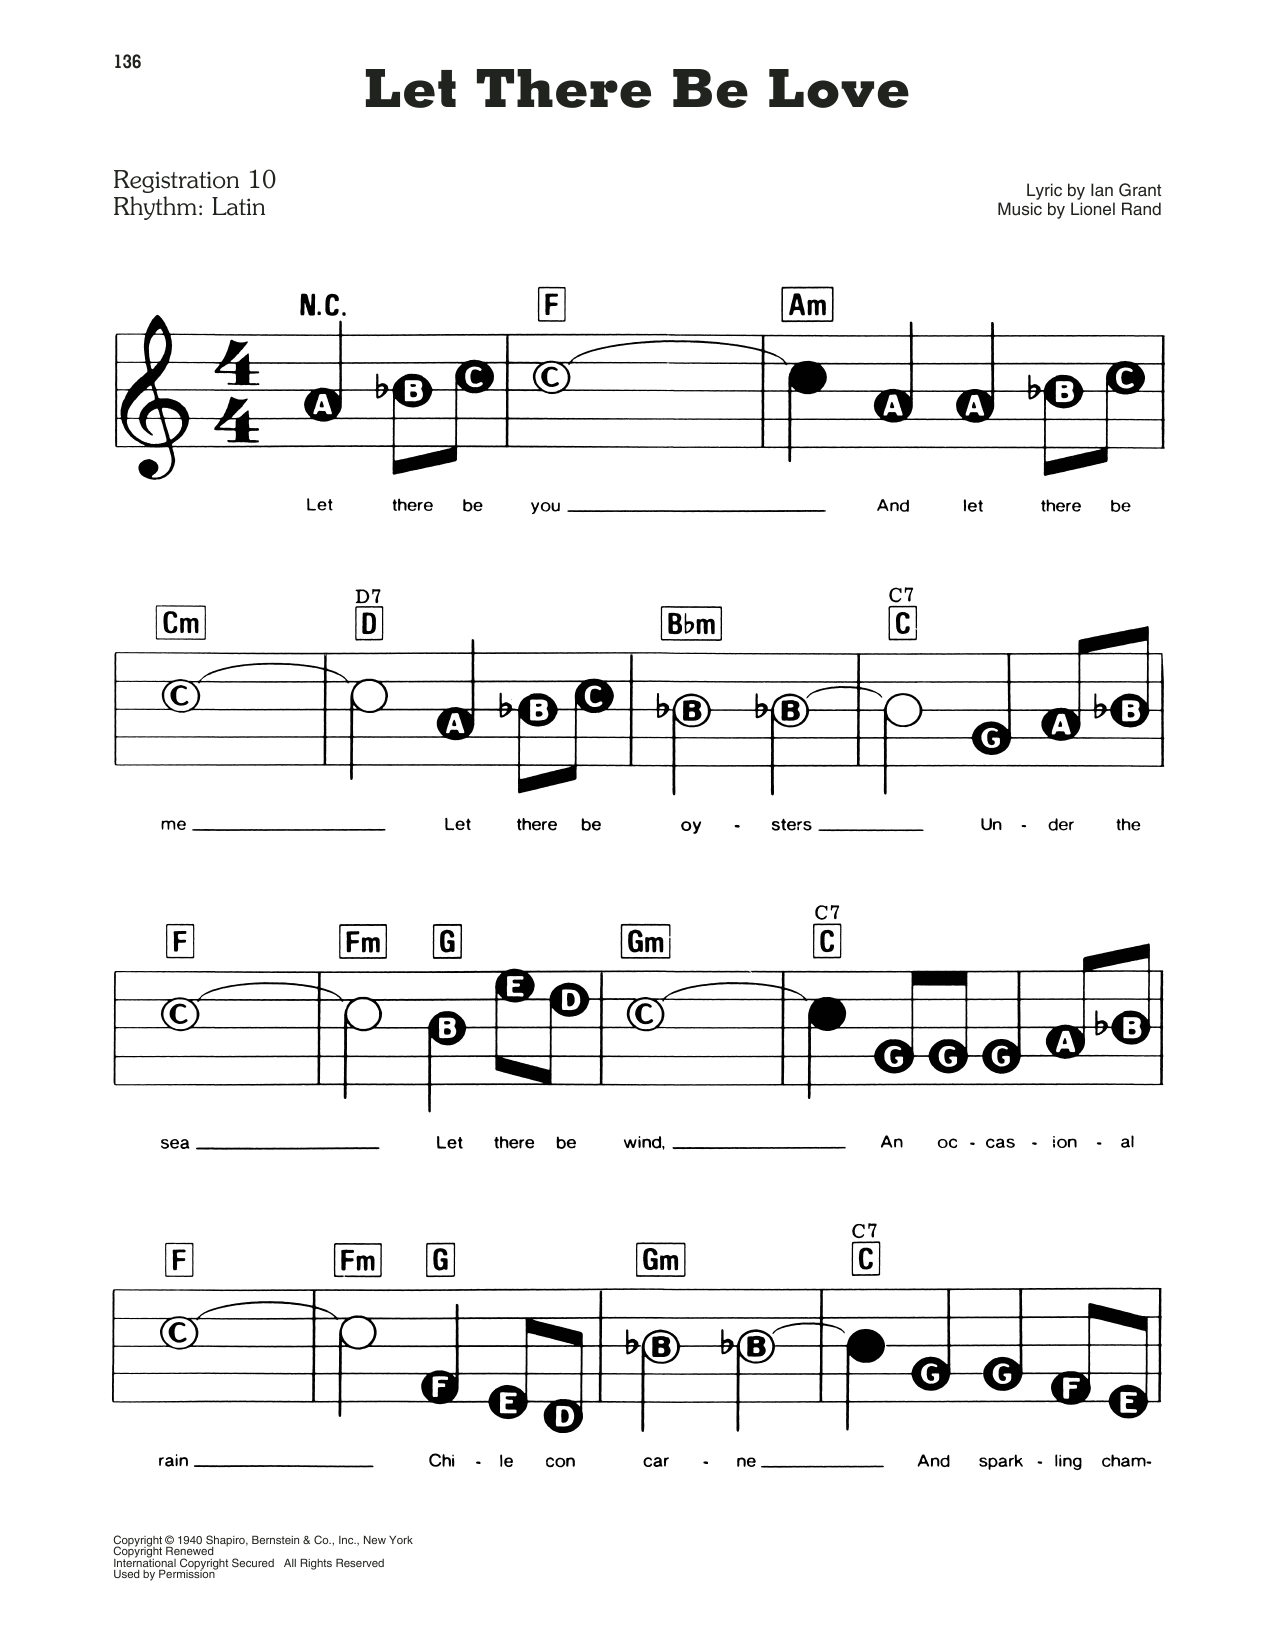 Ian Grant and Lionel Rand Let There Be Love sheet music notes and chords. Download Printable PDF.